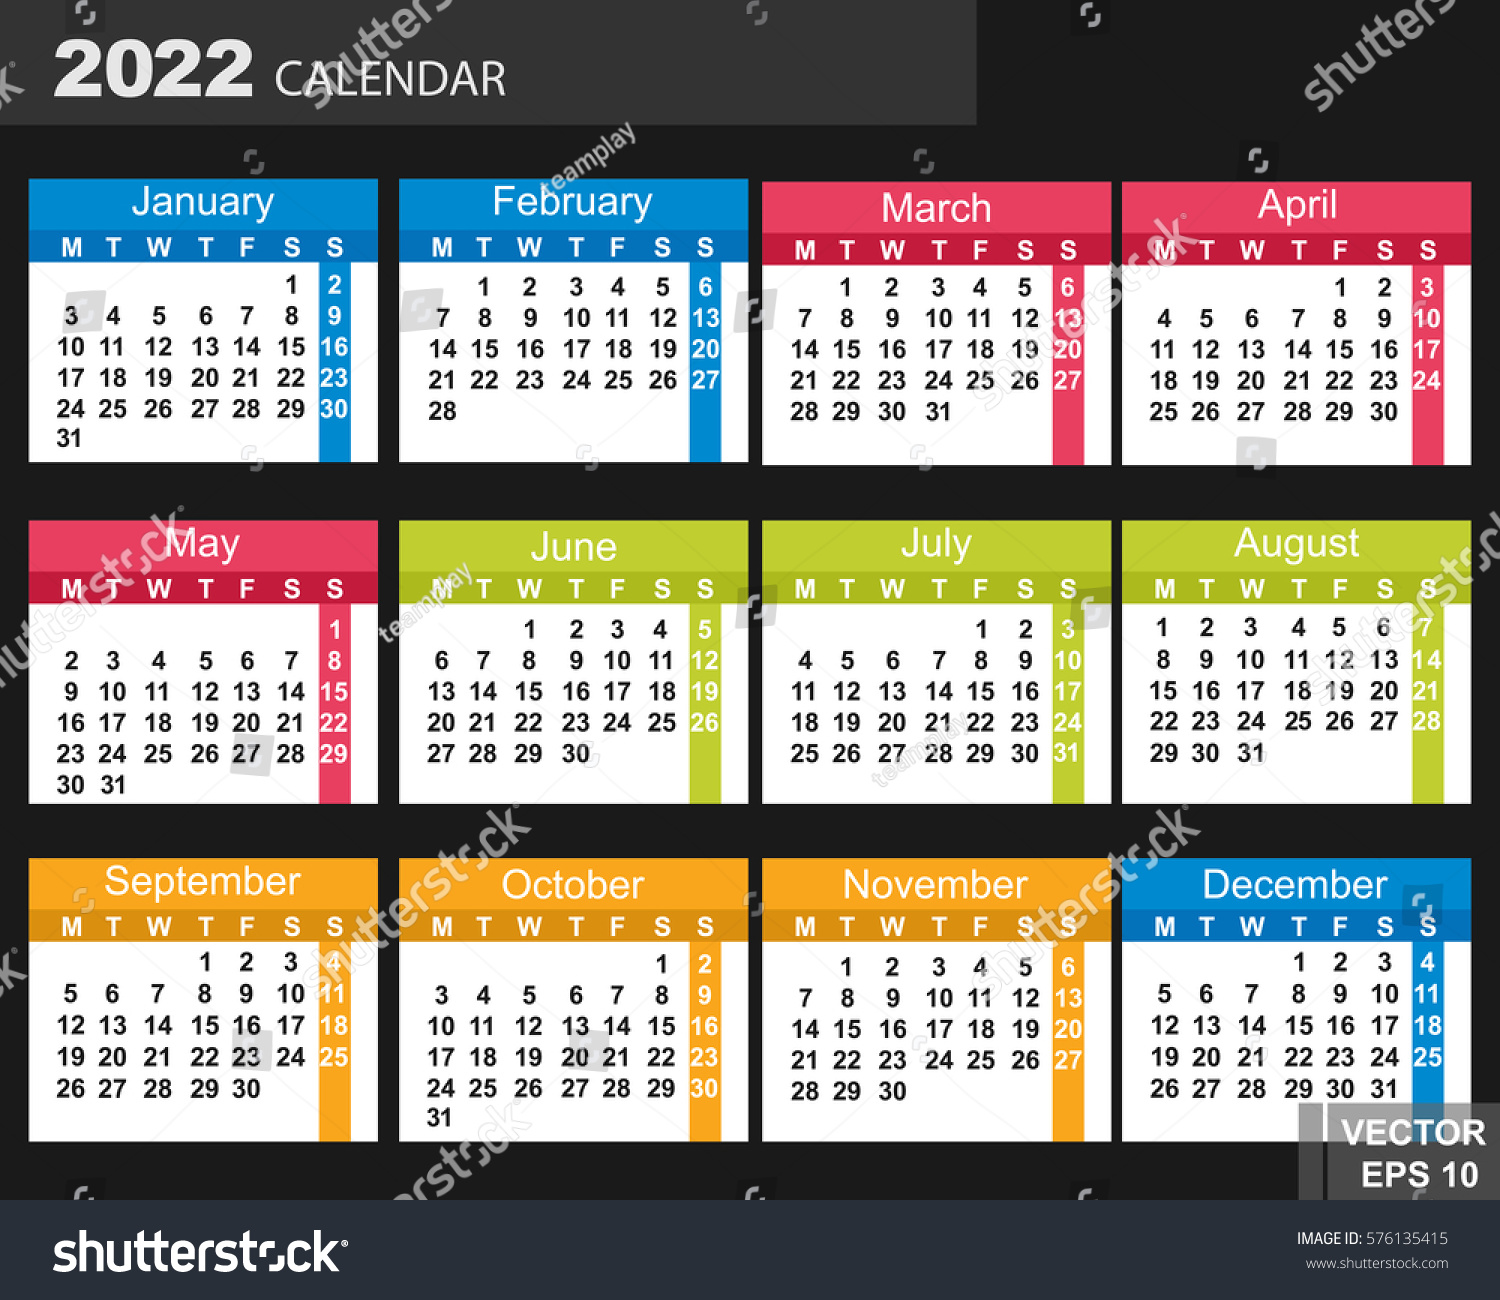 Calendar Design Date : Calendar new year date your stock vector